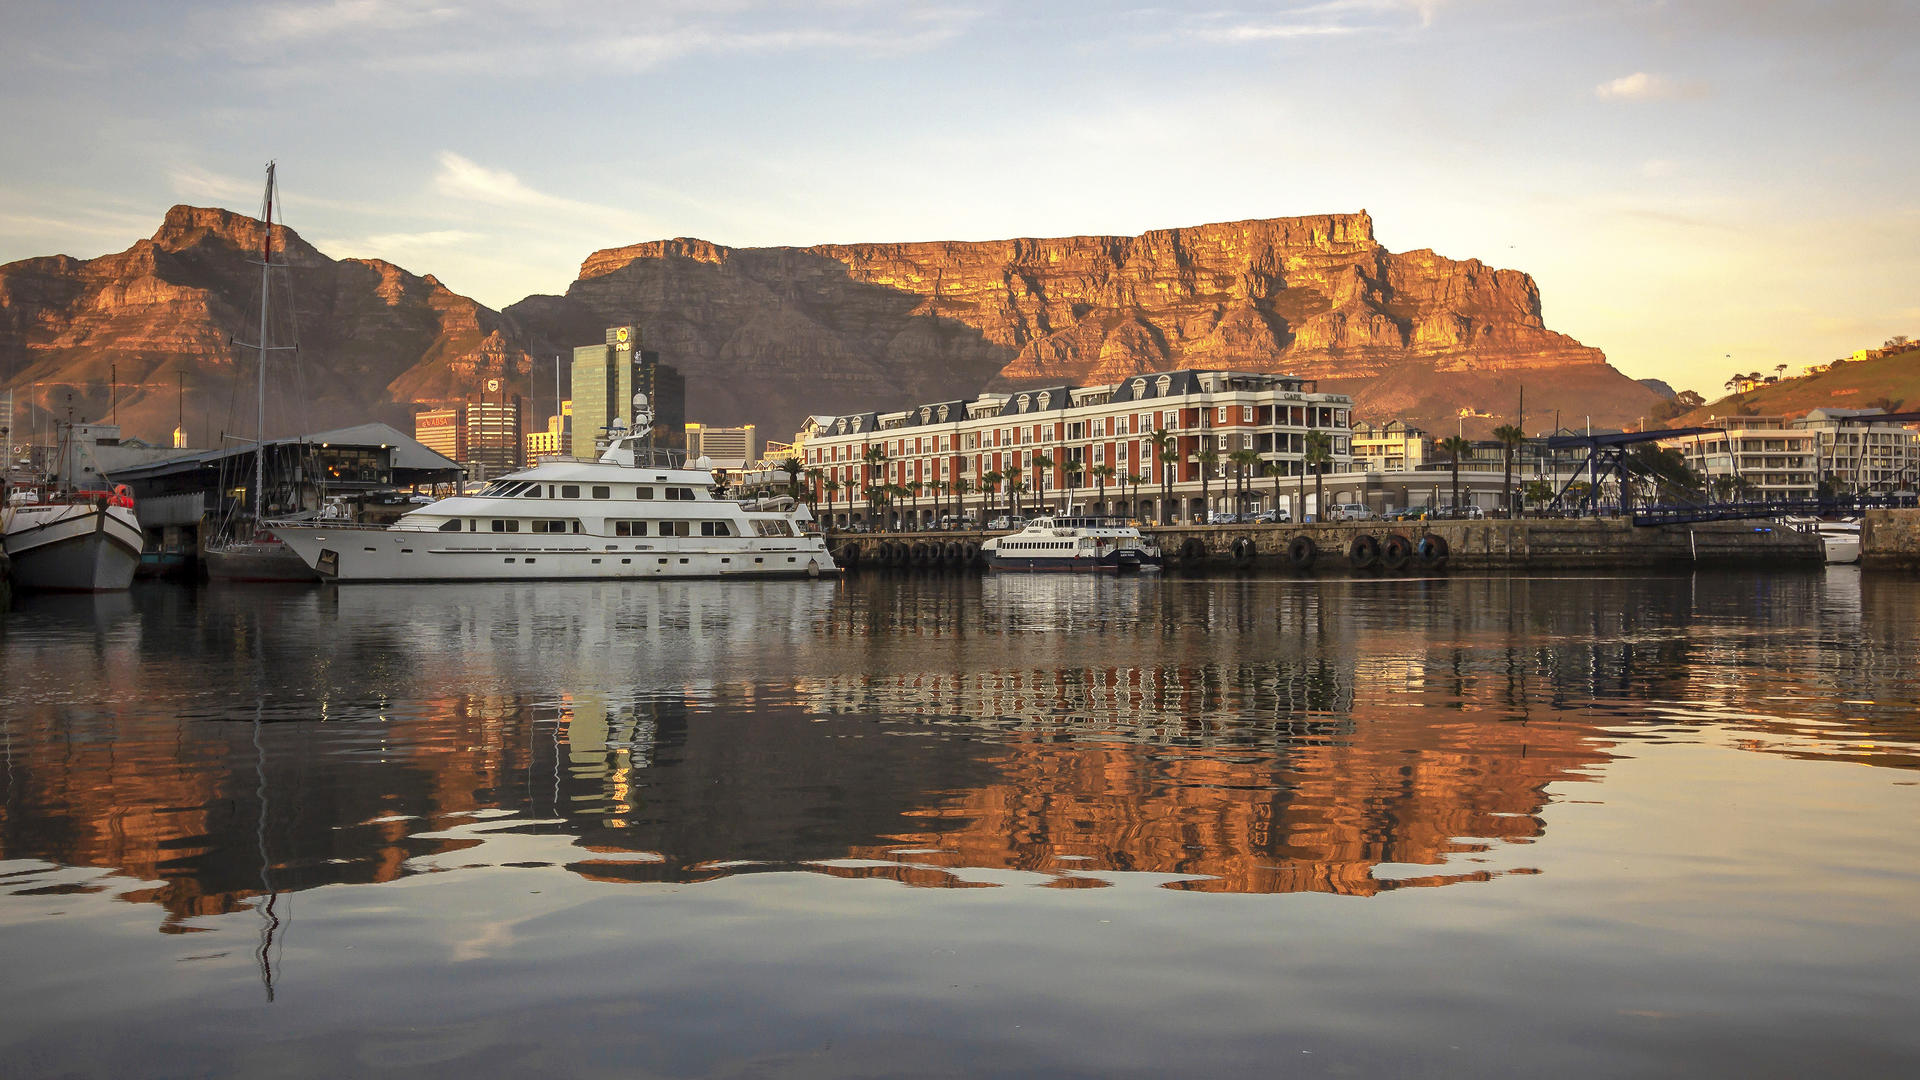 Cape Grace Hotel with backdrop